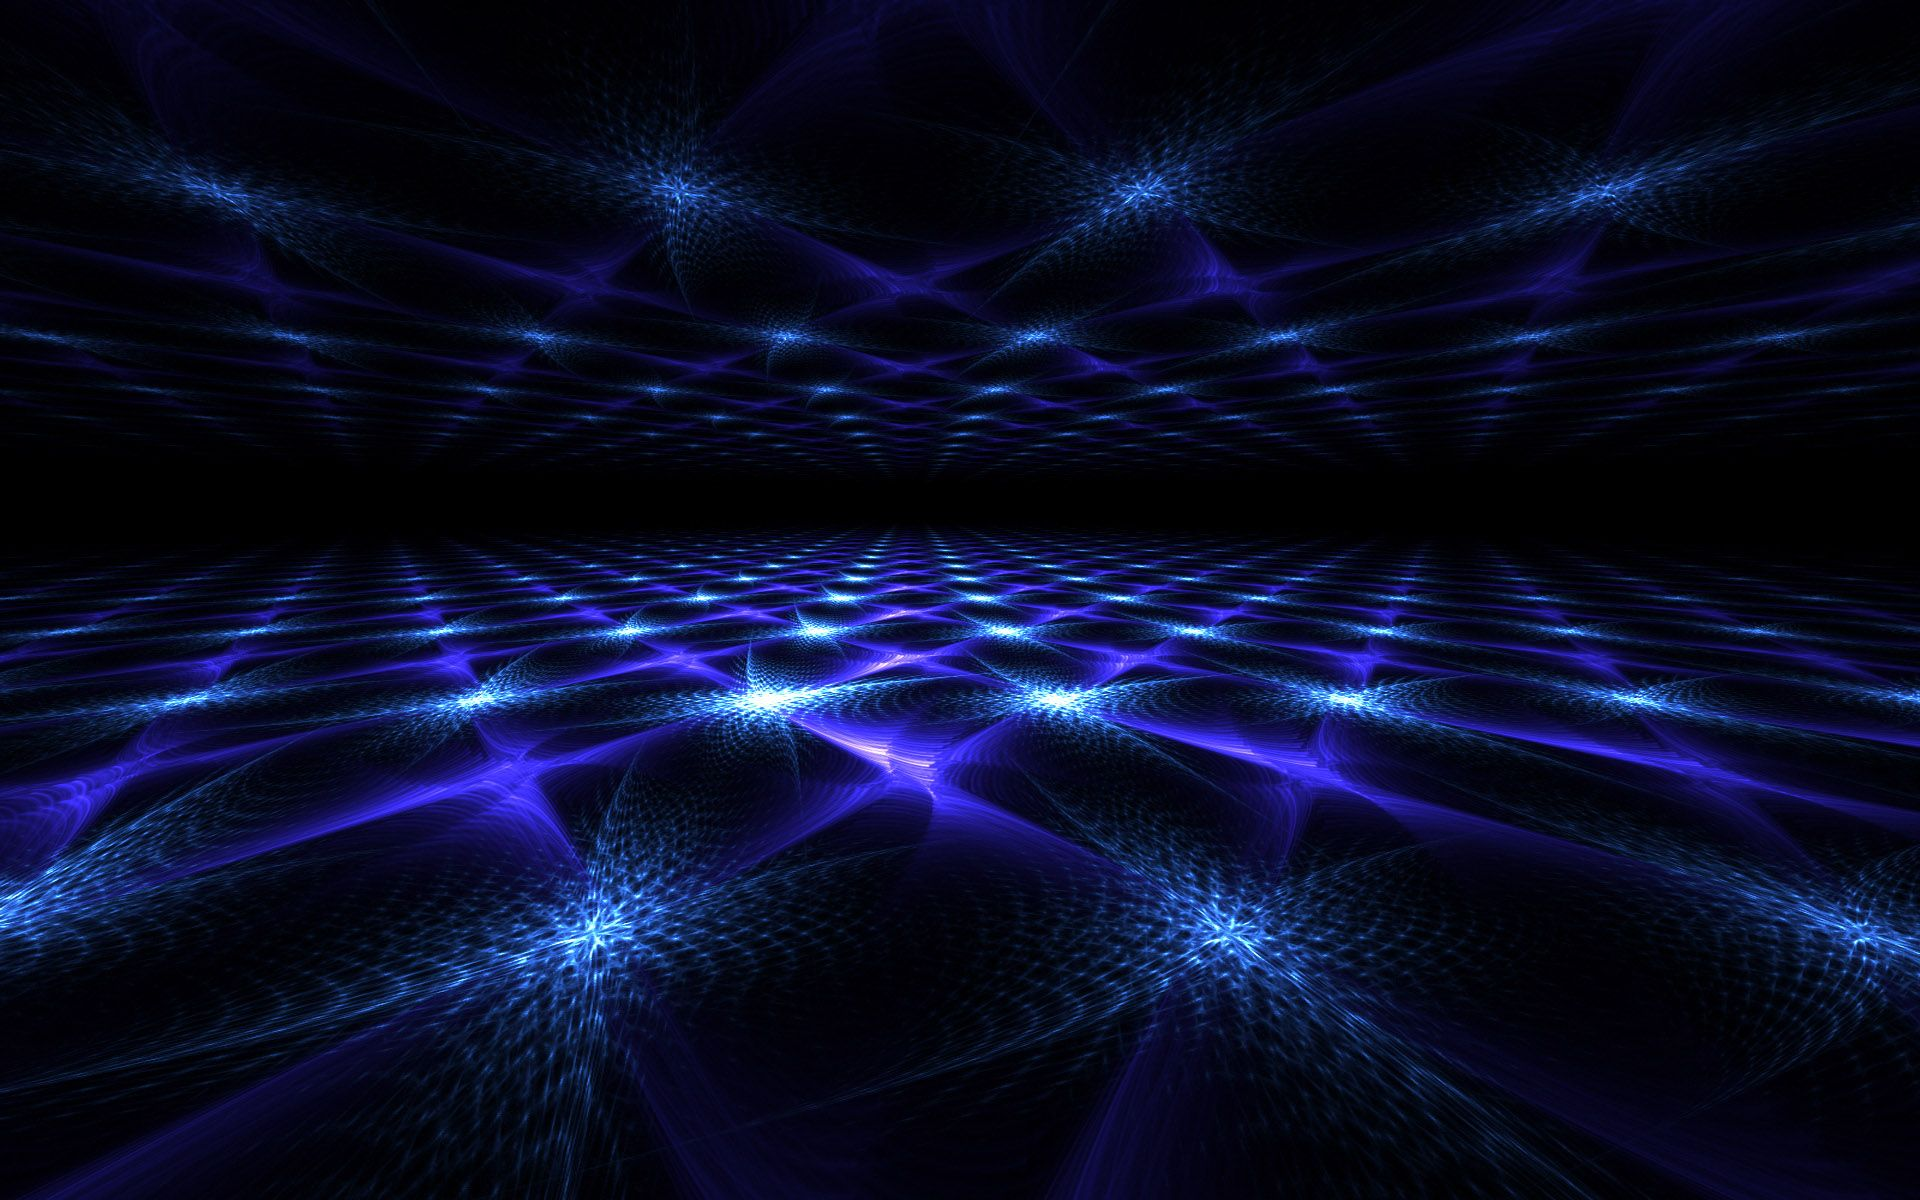 3d Desktop Wallpaper Free 3d Desktop Wallpaper Wallpapers